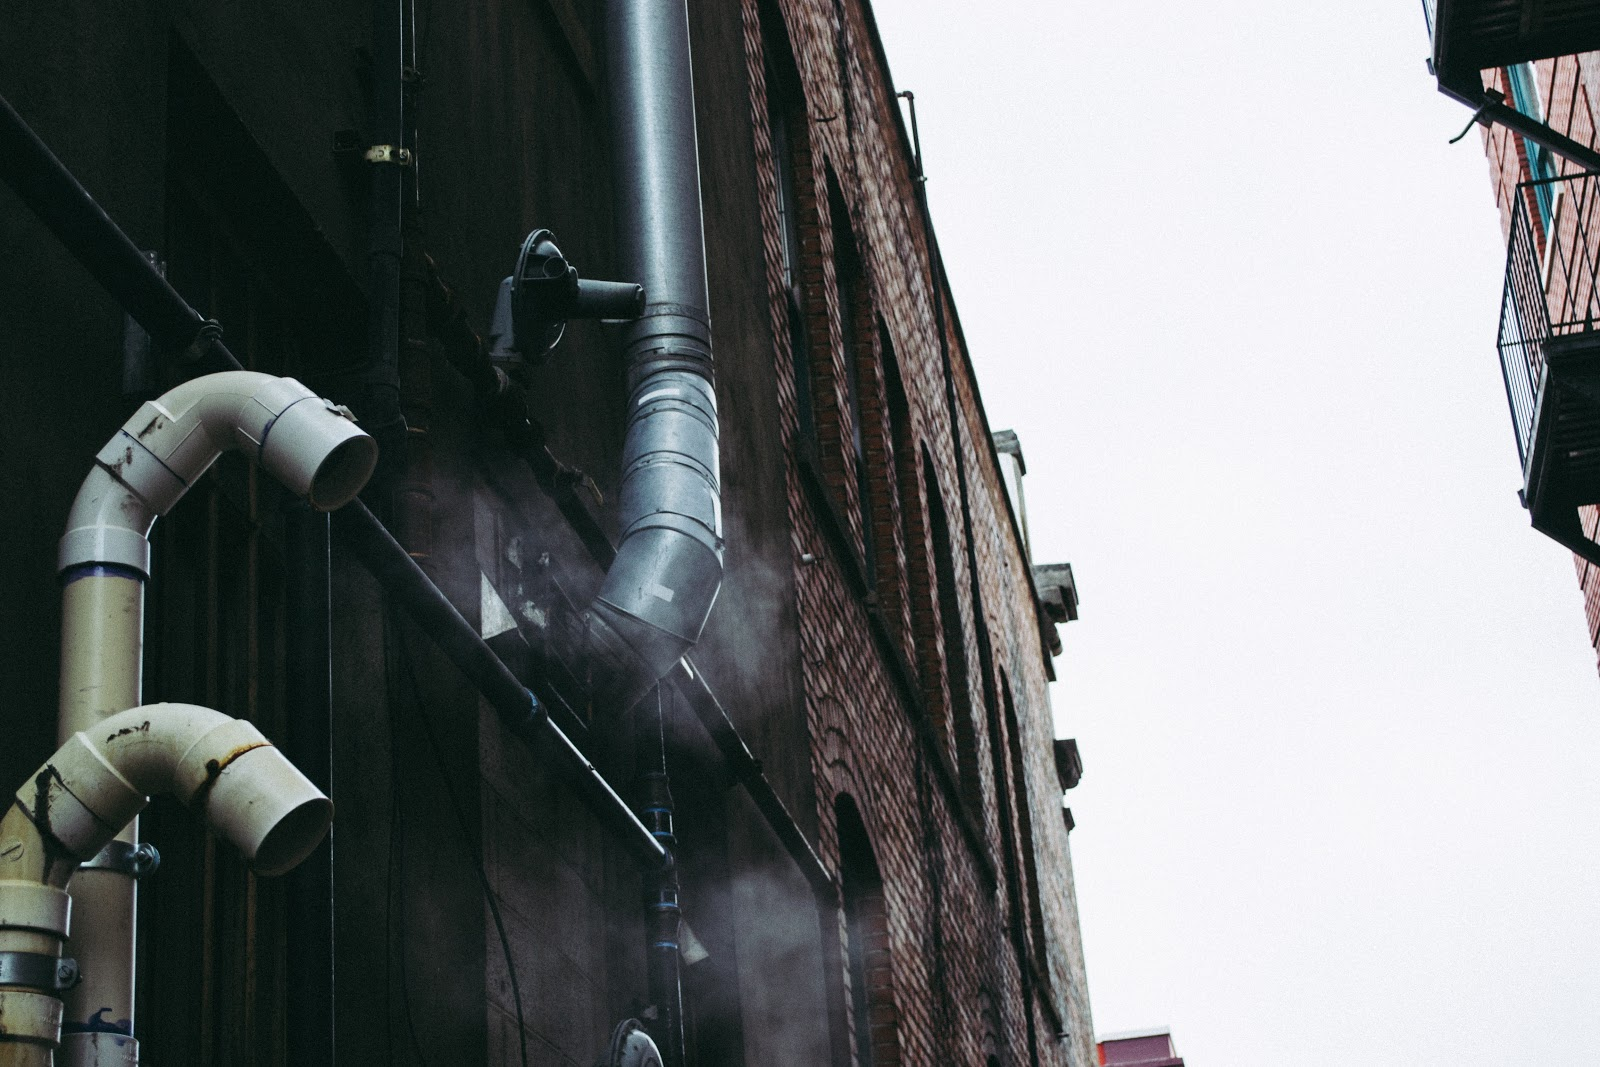 PVC Plastic (one of the 7 types of plastics) pipes outside a building